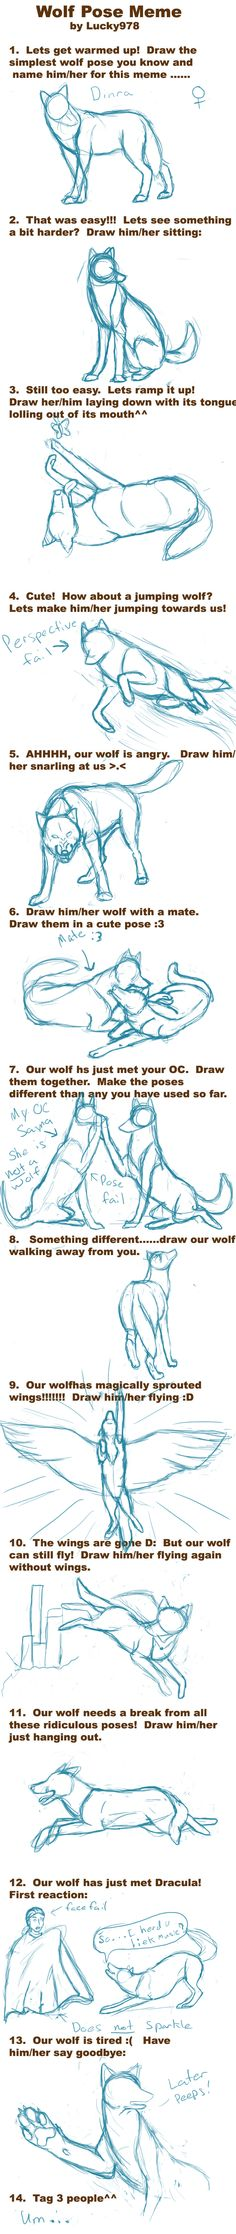 Wolf Pose Meme by *Dekeve on deviantART